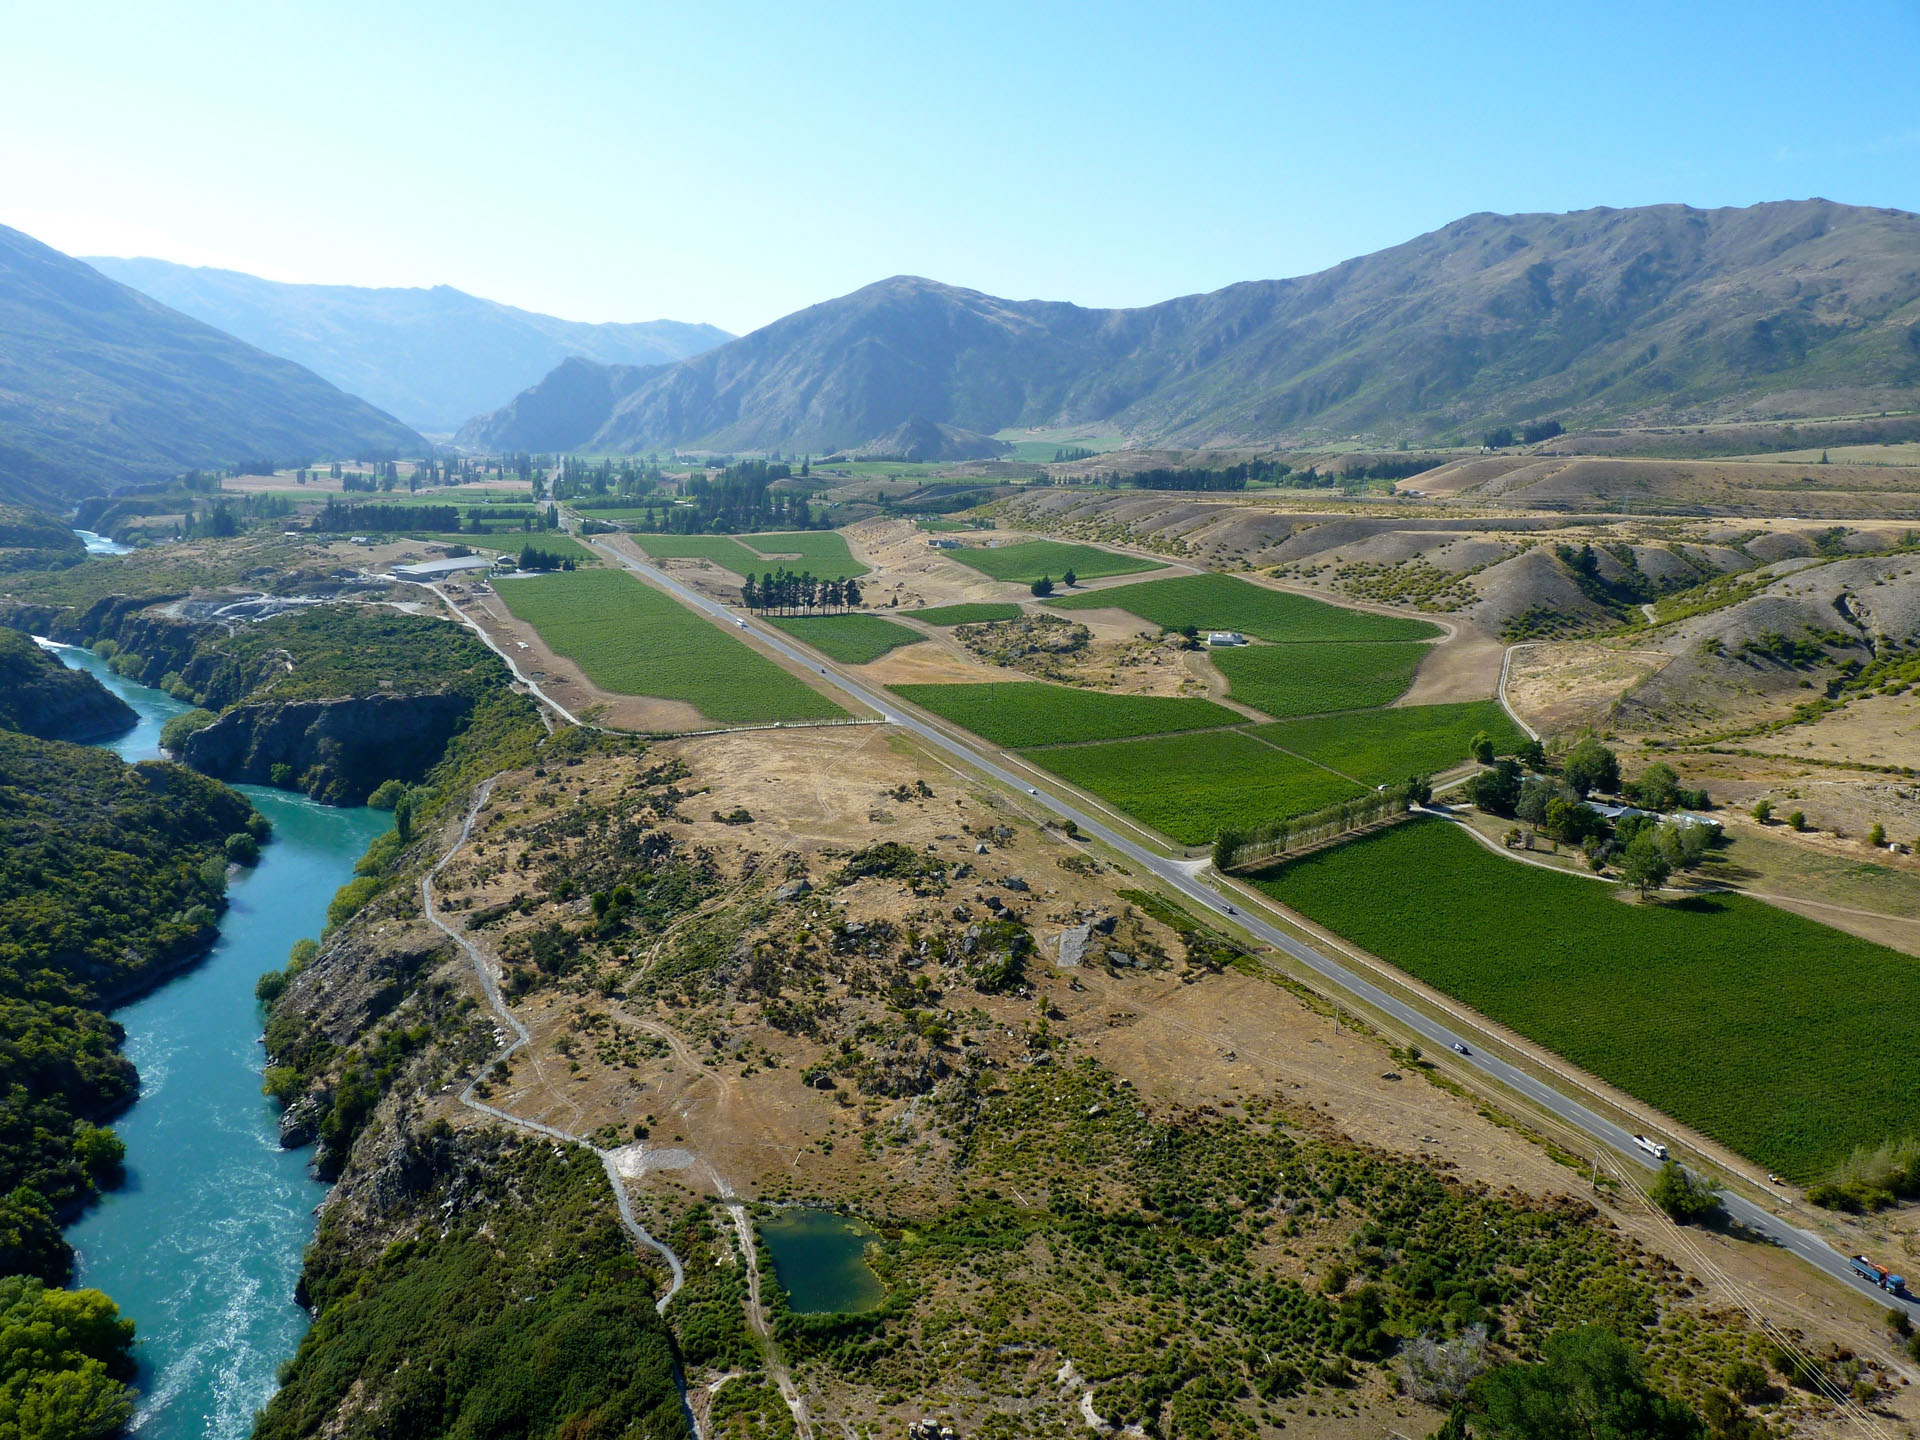 Gibbston Valley near Queenstown is home to fine wineries like Mount Edward and also demonstrates the beauty of the New Zealand countryside.